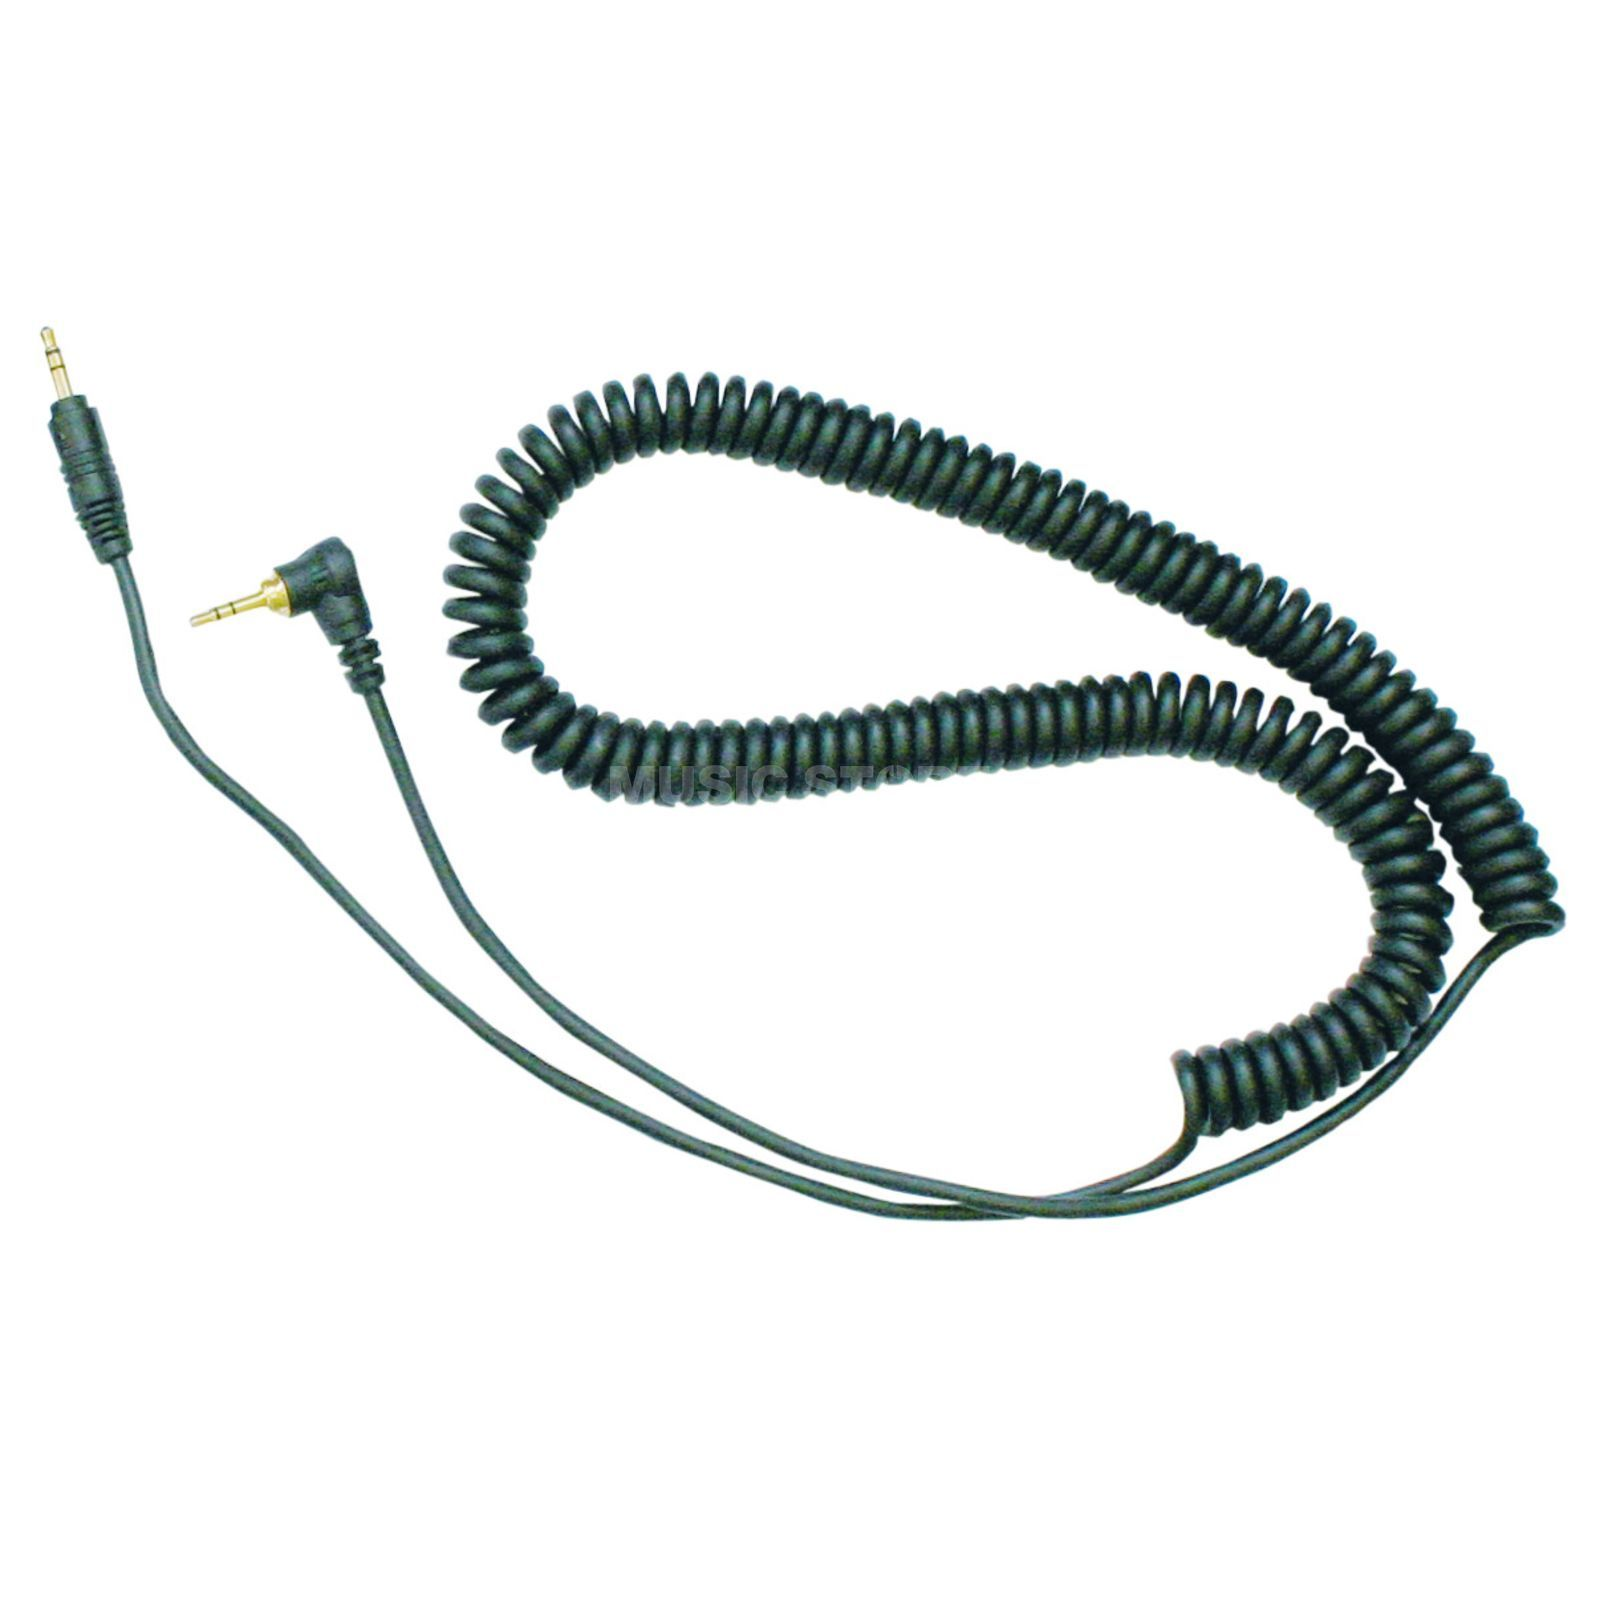 Reloop Replacement Cable for RHP-10/RH-3500 Spiral black Zdjęcie produktu